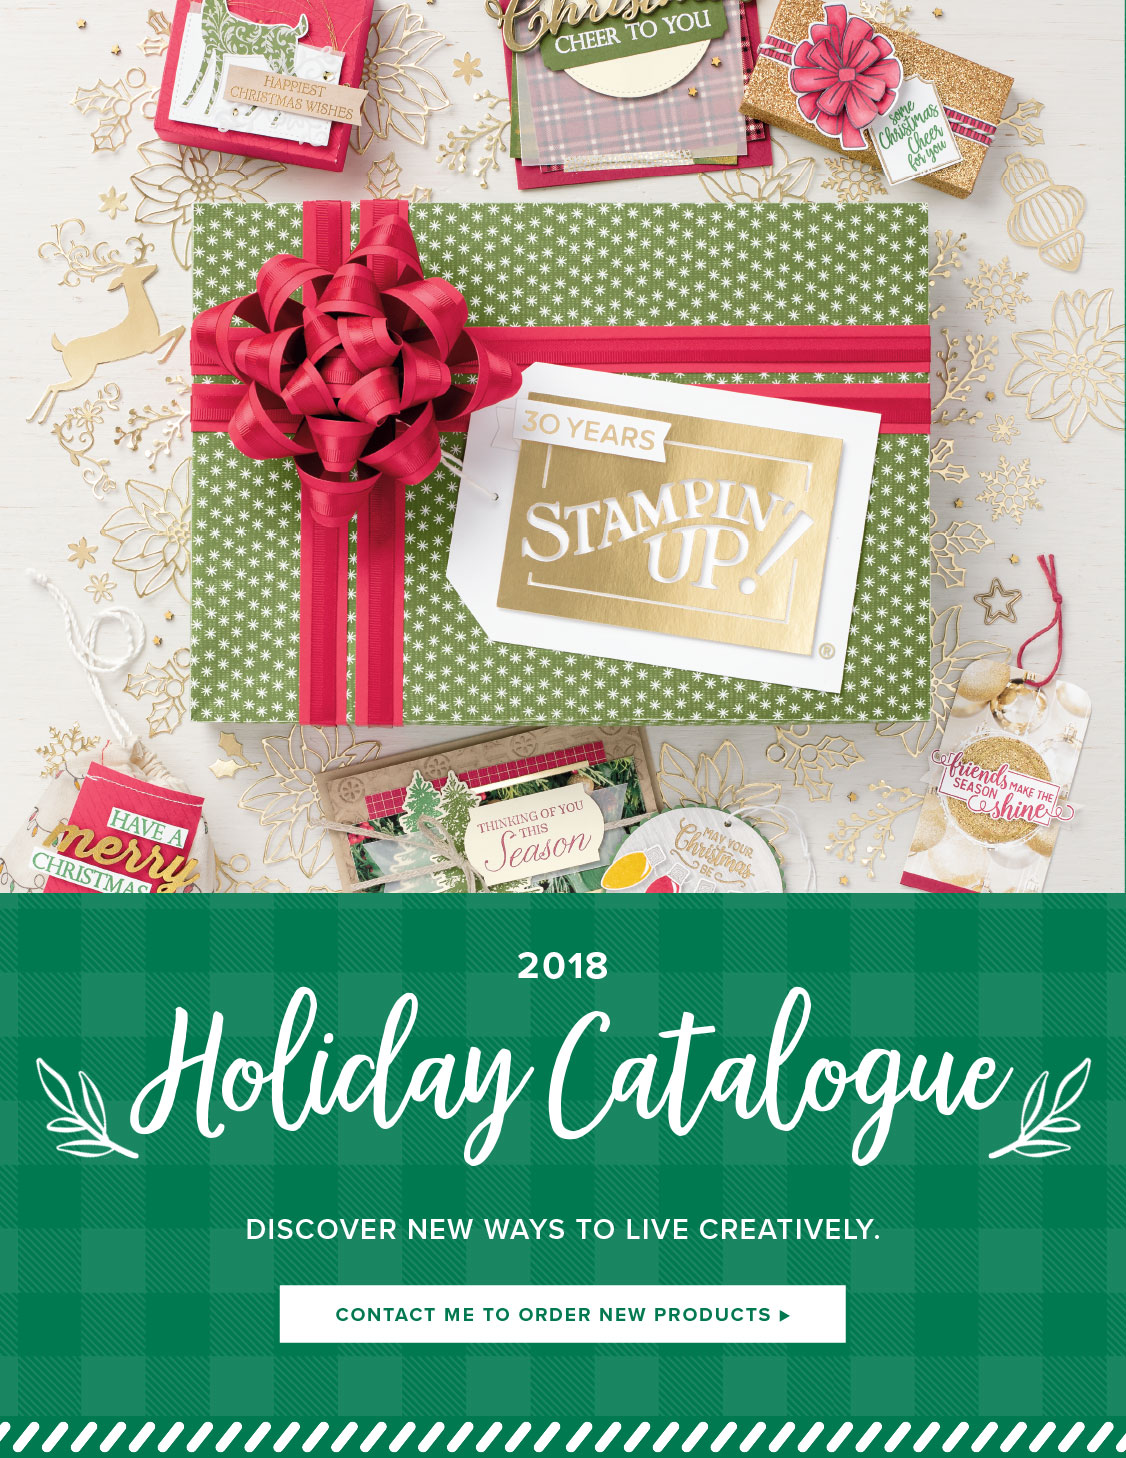 Click here to view the Holiday Catalogue